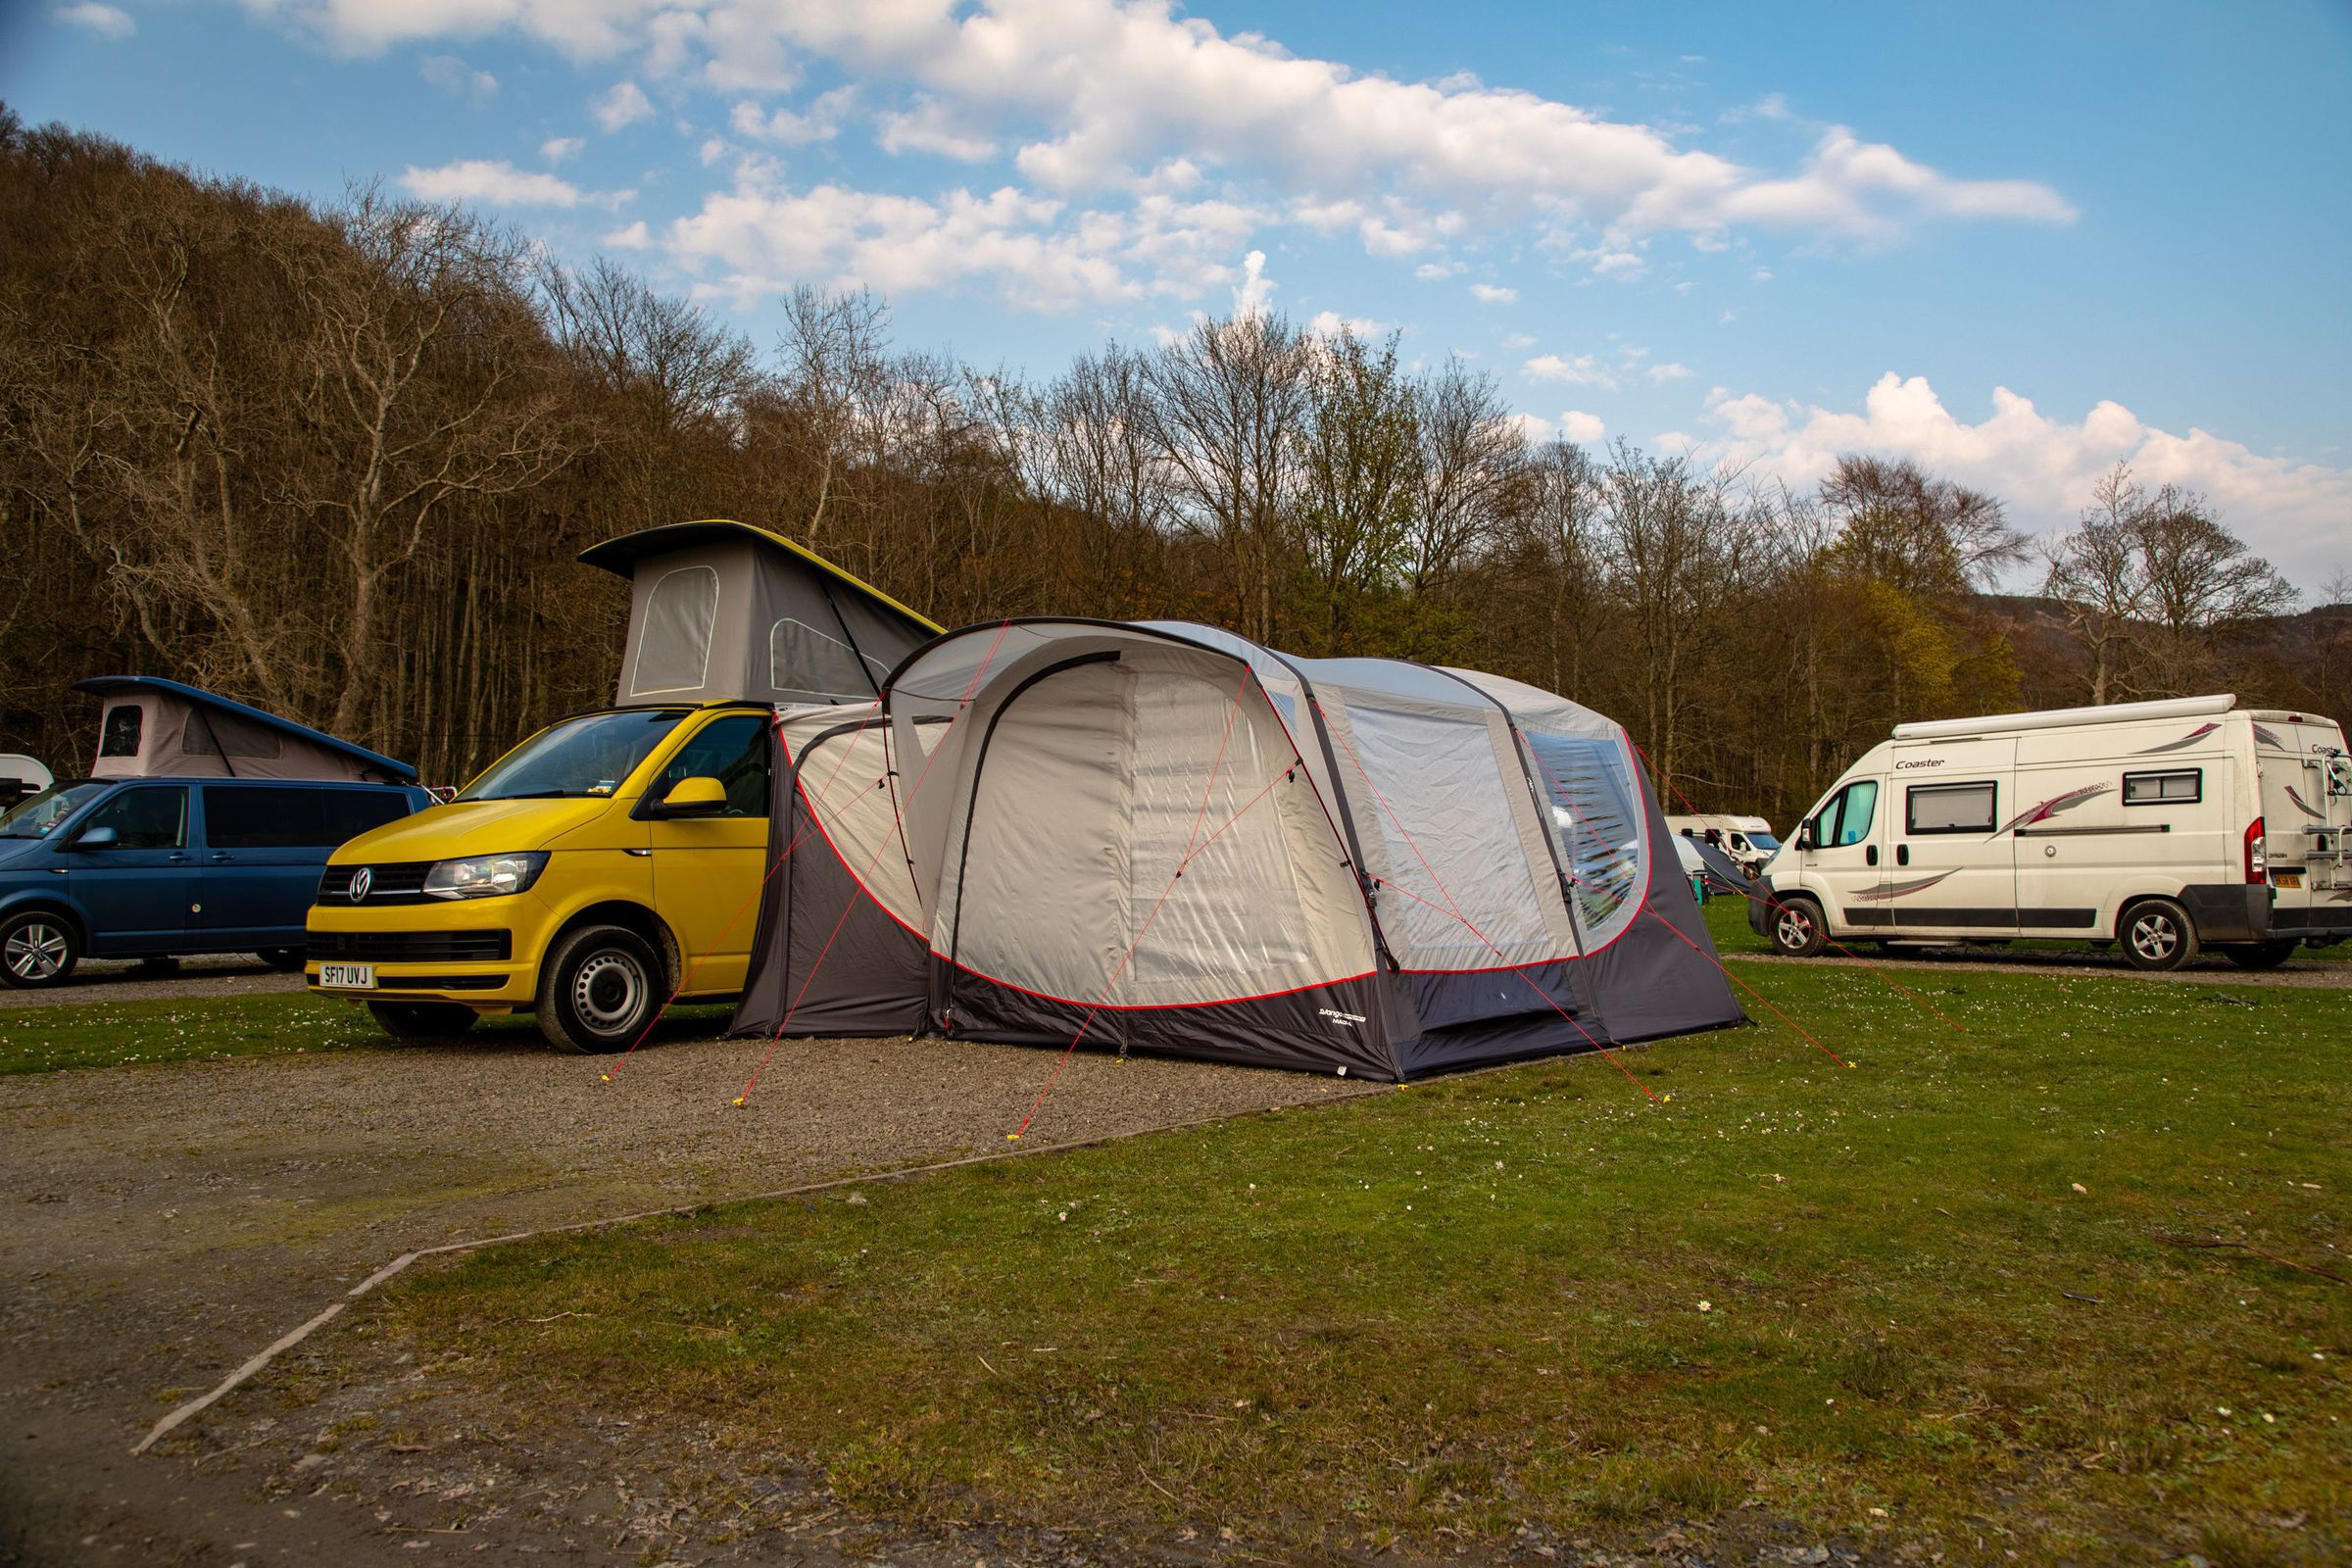 Vango Magra Vw Low Driveaway Awning Norwich Camping10